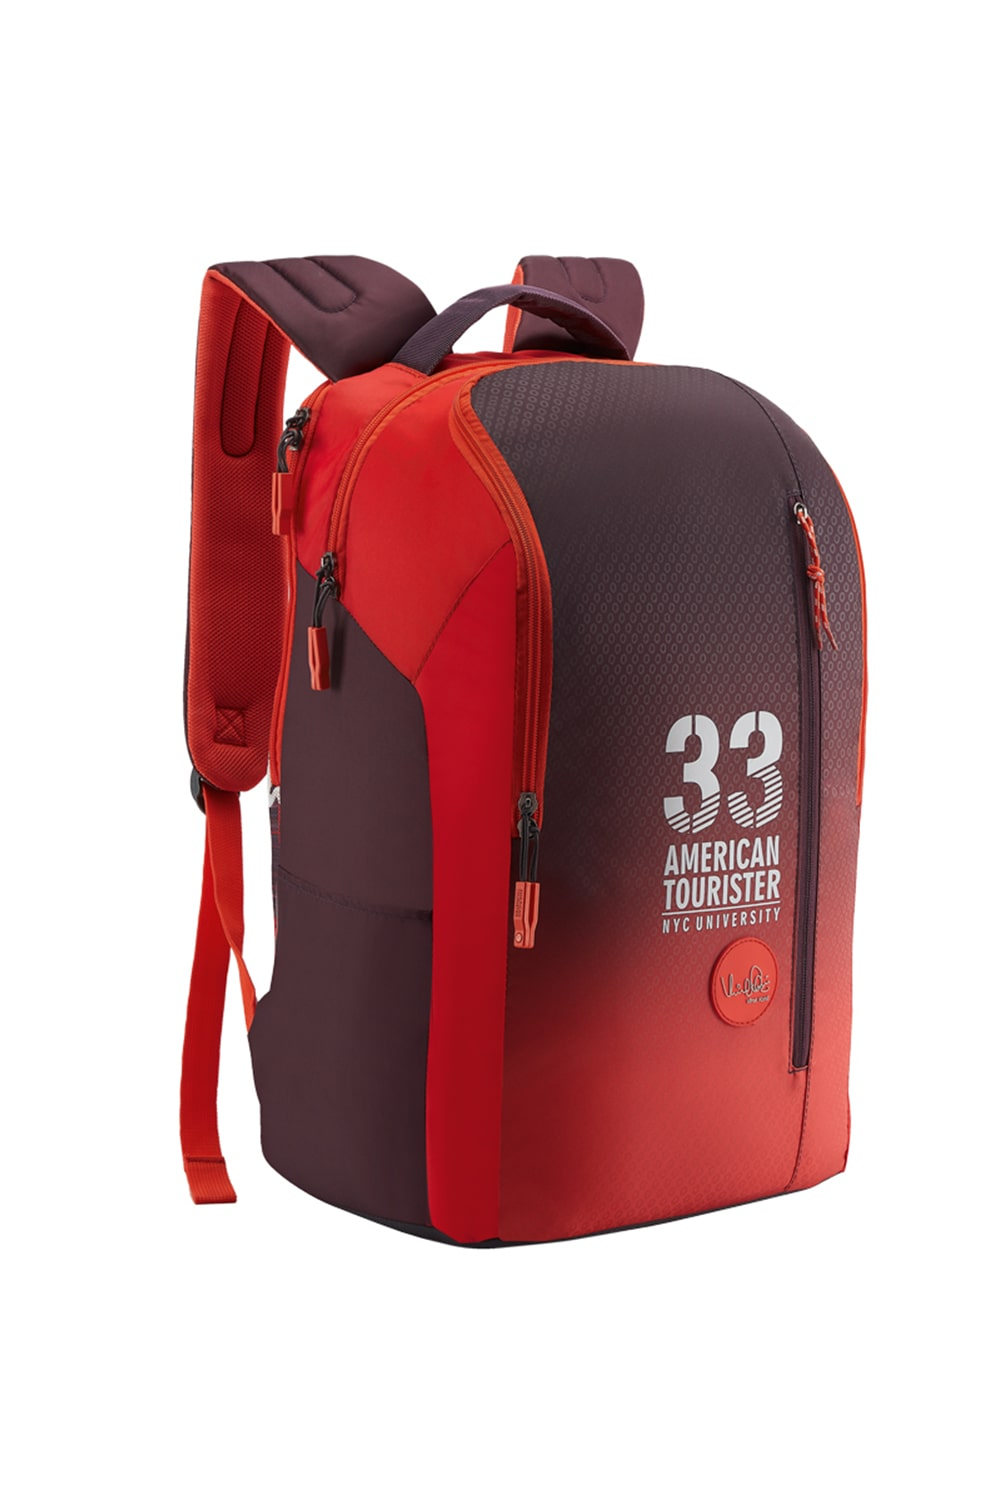 American Tourister Yooper 03 Backpack Travel - Rust